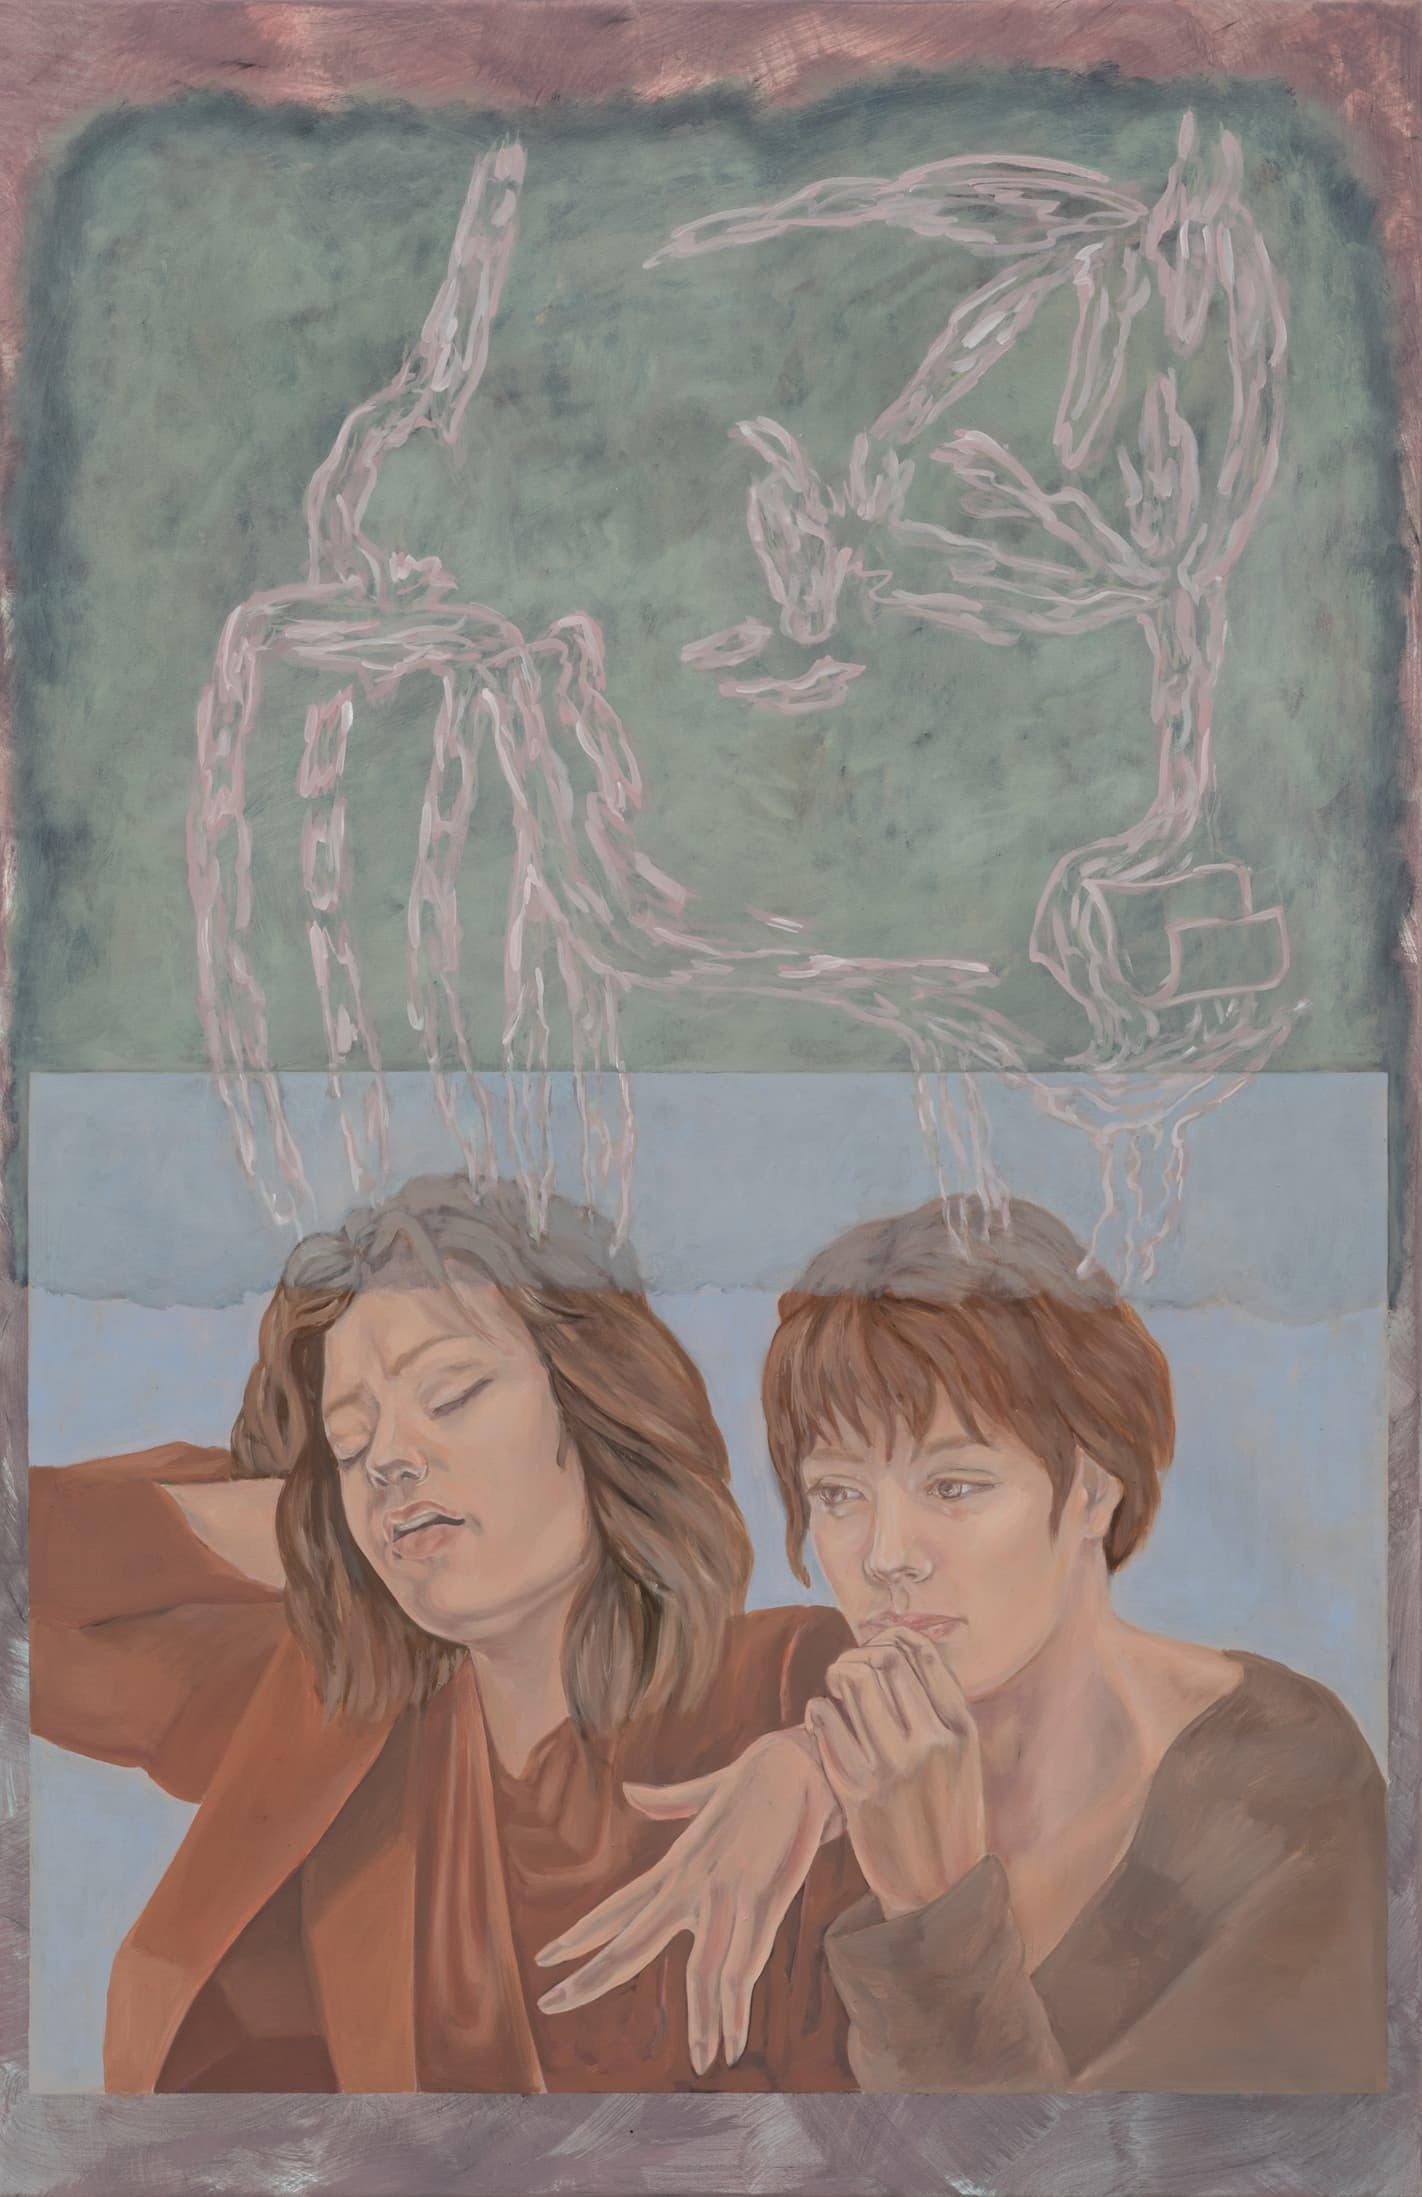 Minda Andren, X and Y travelling together, 2021, Oil on canvas, 100 x 65 cm